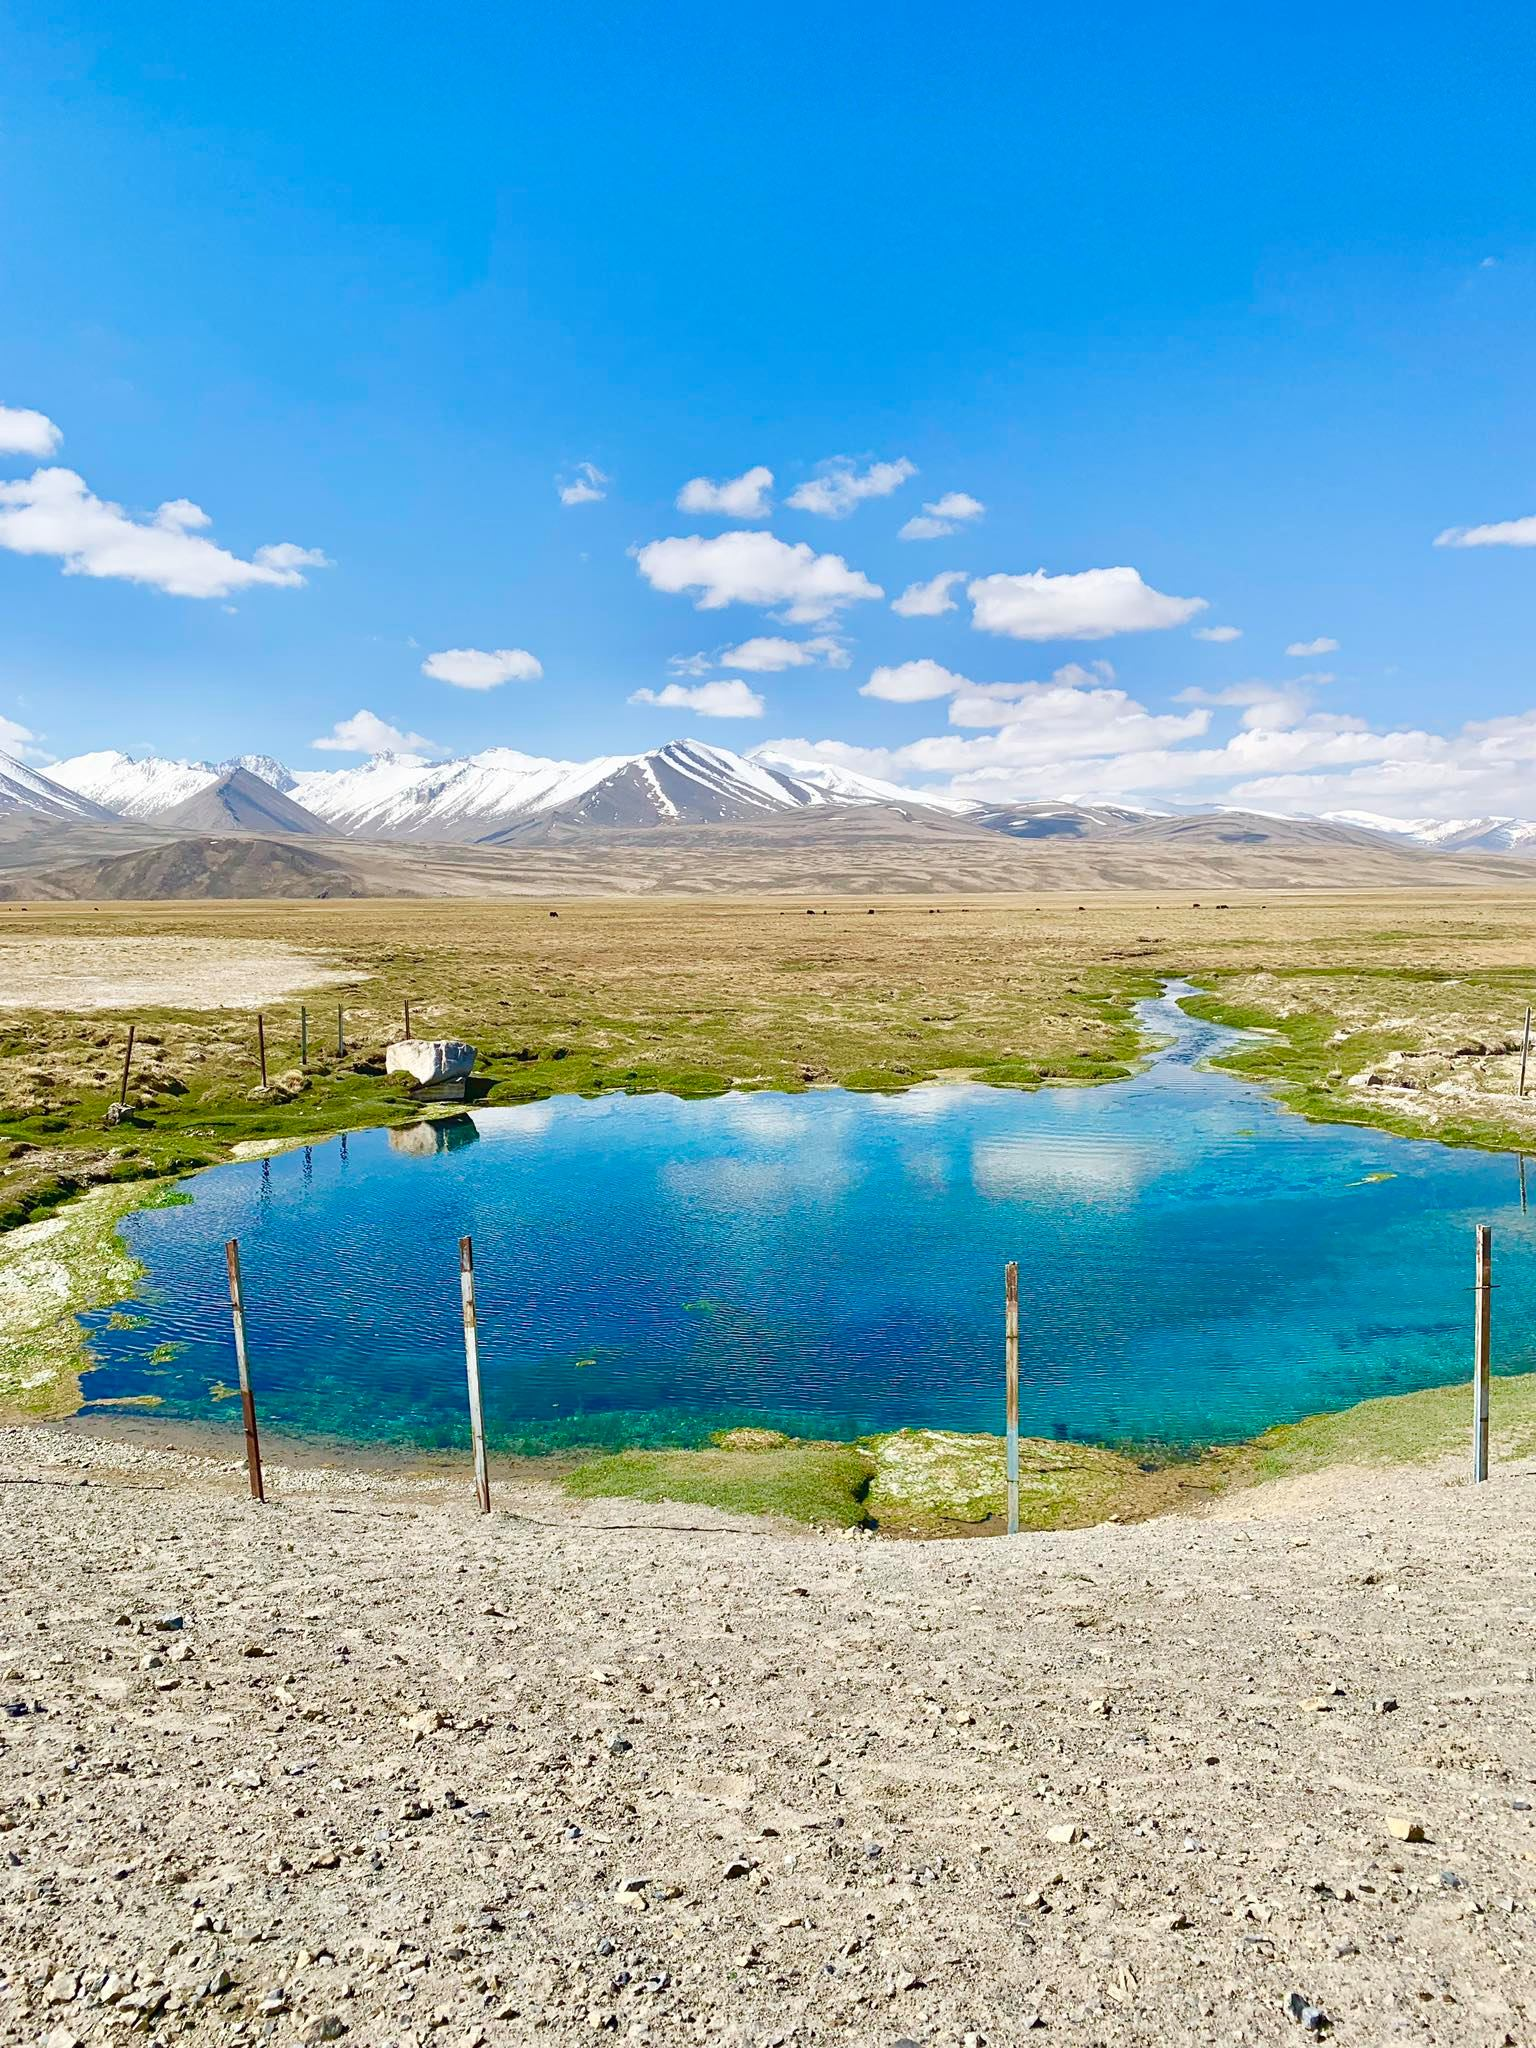 Kach Solo Travels in 2019 Our unexpected last stop during our Pamir Highway Roadtrip1.jpg